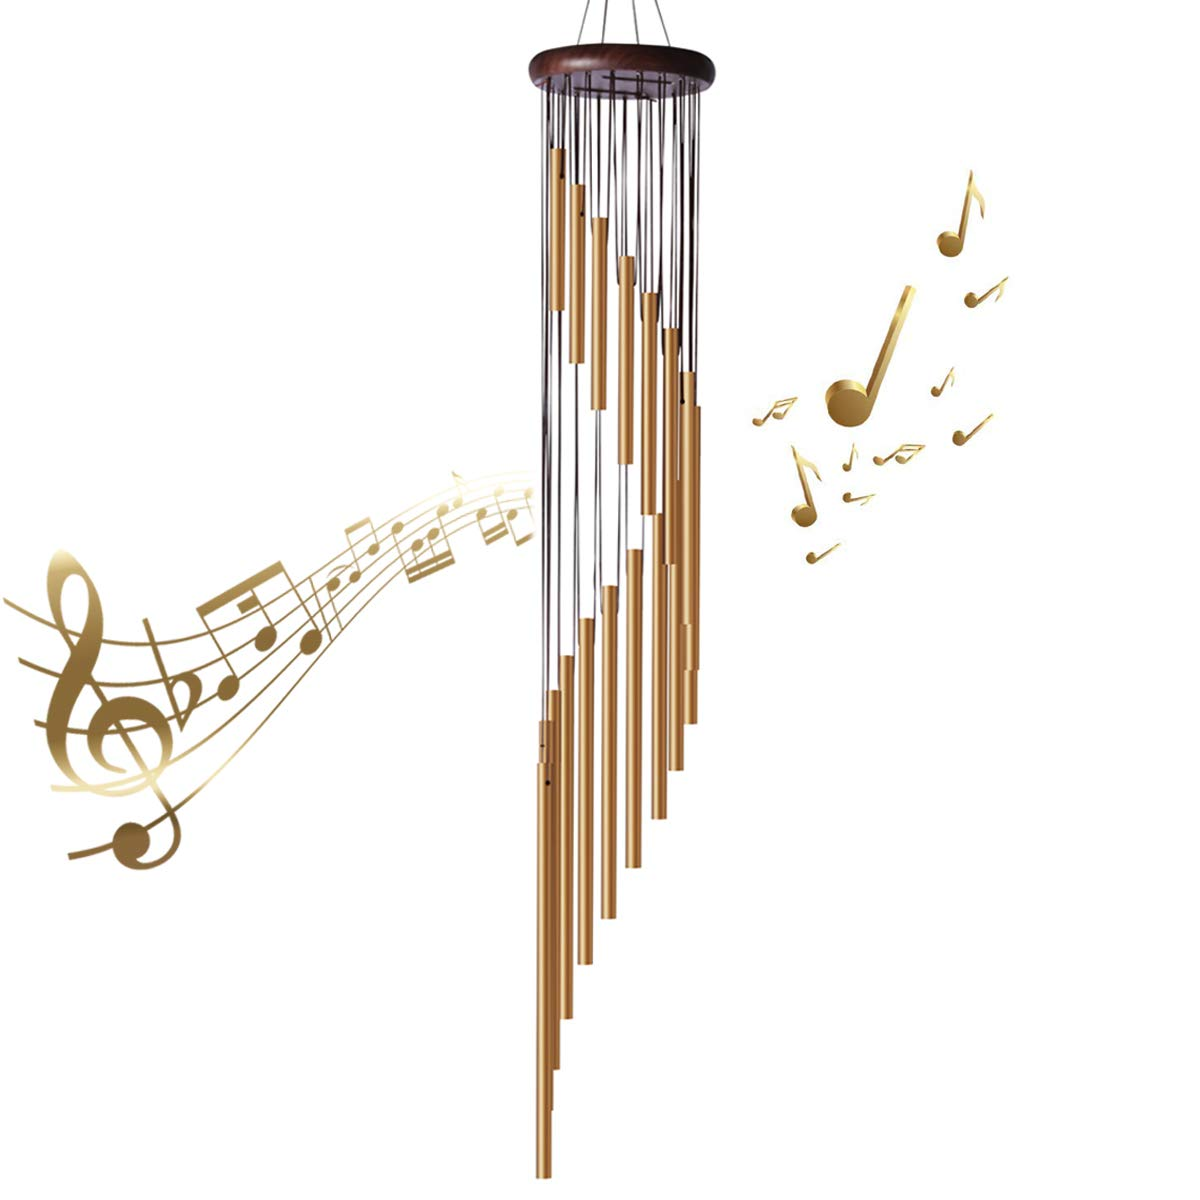 35'' Large Wind Chimes - Amazing Grace Wind Chimes with 18 Roots Aluminum Alloy Tubes and Wood Design, Inspirational Collection for Outdoor Patio Backyard Home Decor (Golden Bronze)